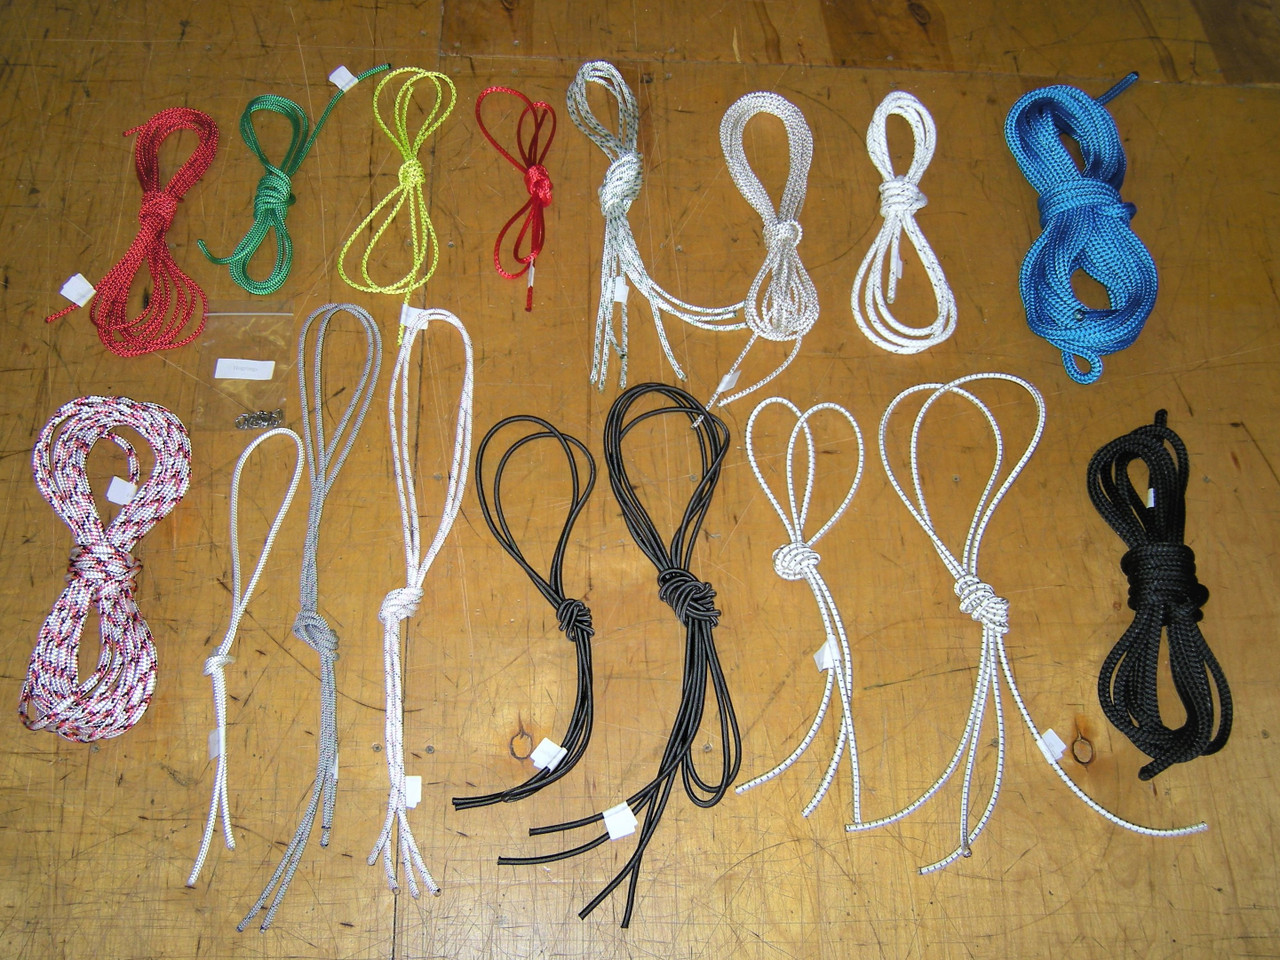 Line kit for Nacra 5.2 with high quality ropes from Marlow, Samson, and/or Bainbridge. Includes Running Rigging plus Bungee and Hogclips. Colors and line types subject to change.